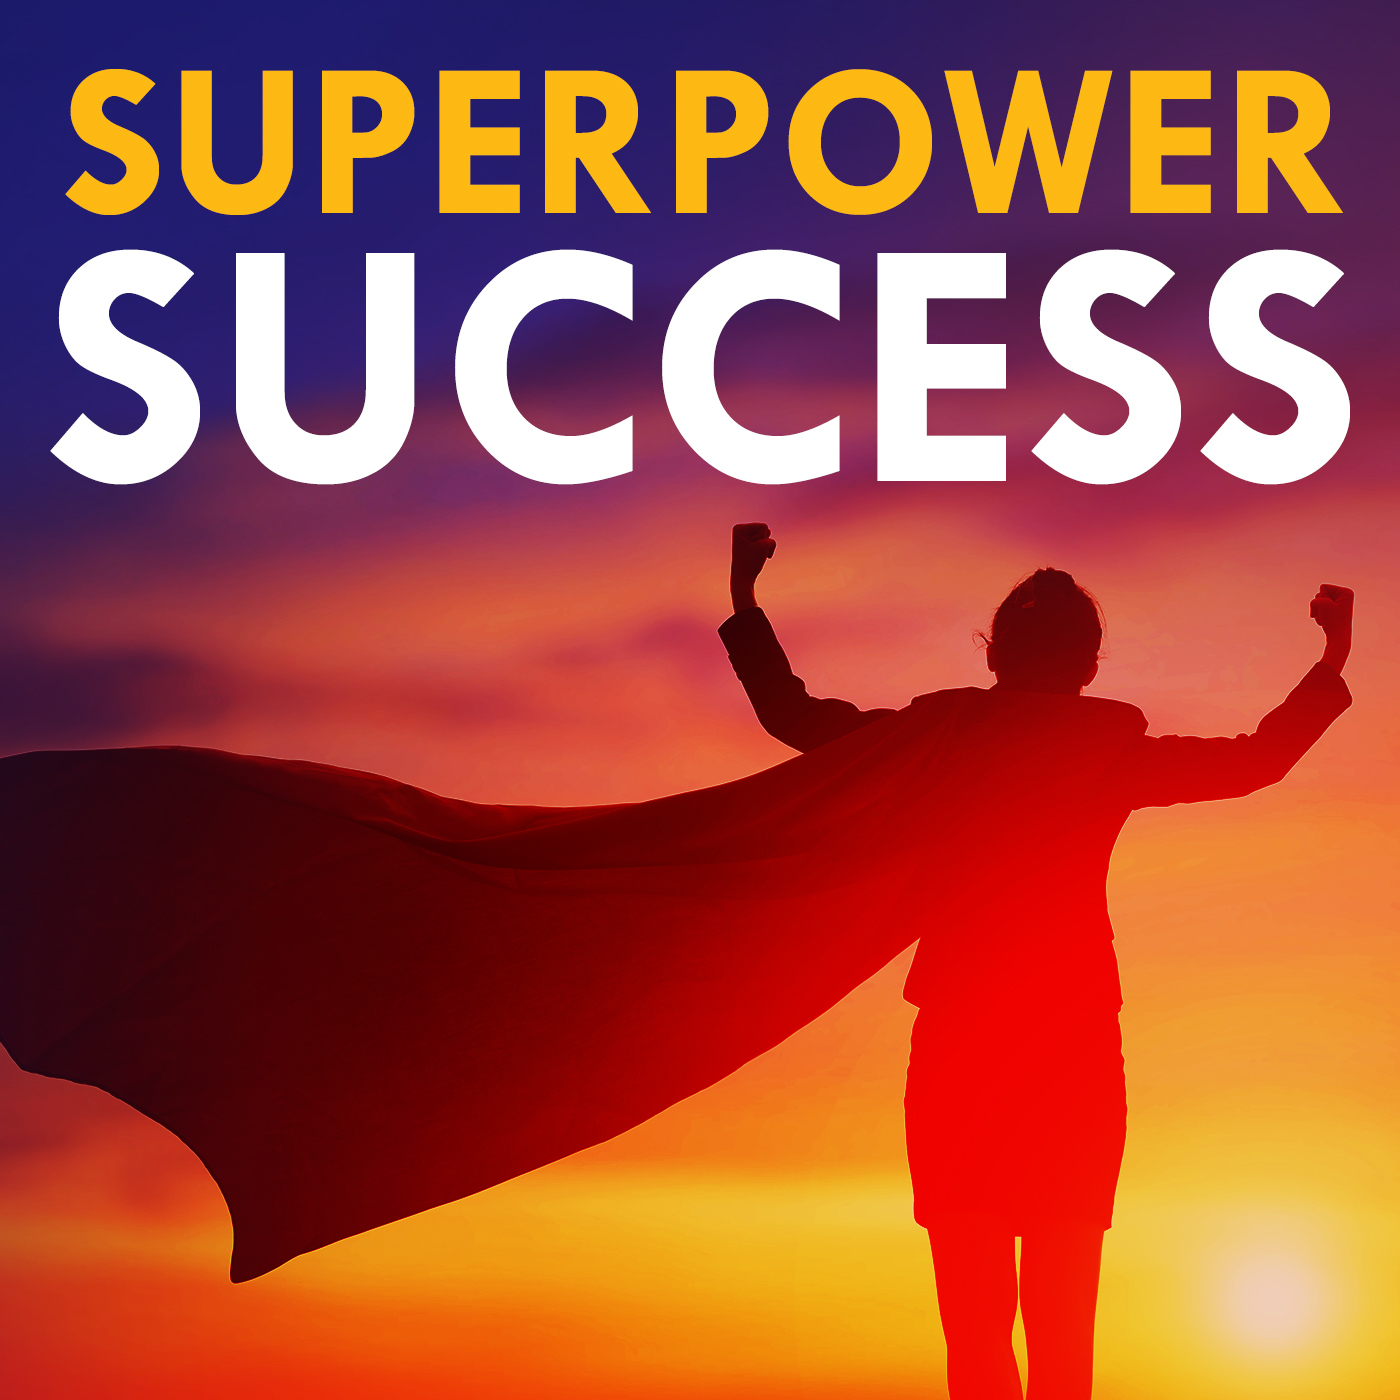 SuperPower Success